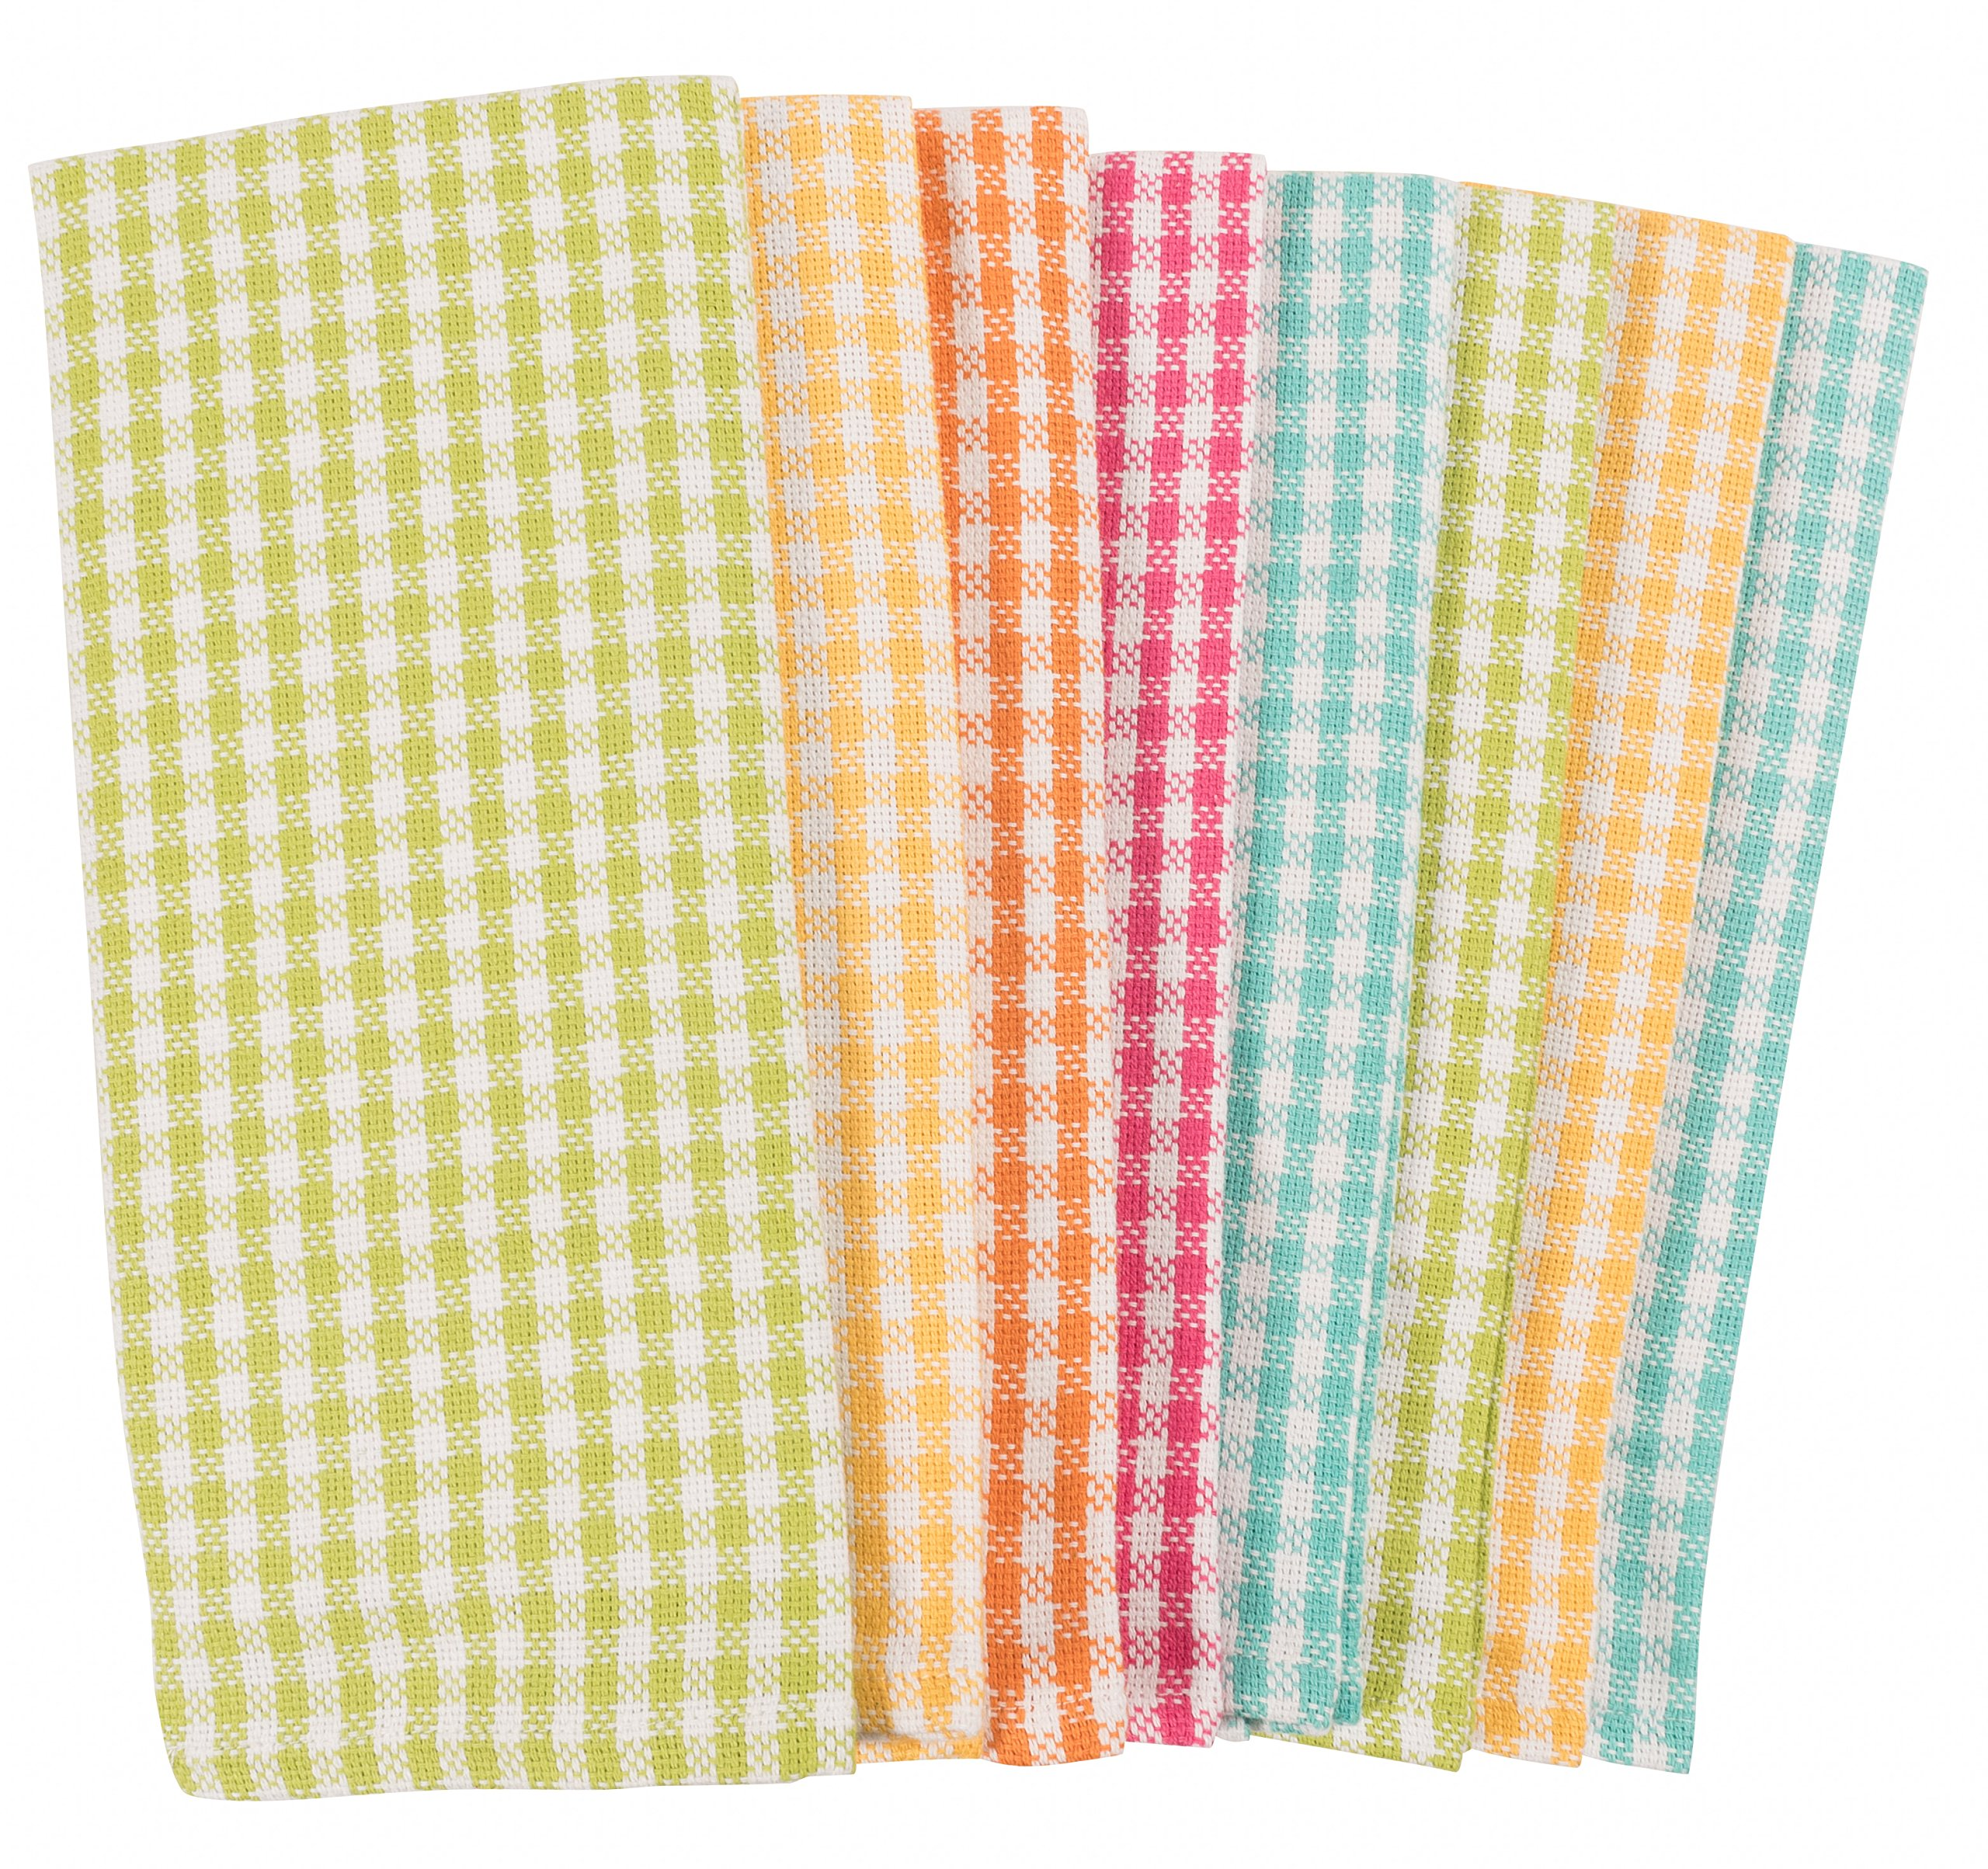 KAF Home Gingham Check Kitchen Towels | Set of 8, 100% Pure Cotton, 16'' x 26'' Kitchen Towels | Absorbent, Soft, Fun, and Beautiful Kitchen Towels | Perfect for Barbecuing and Grilling (Brights)